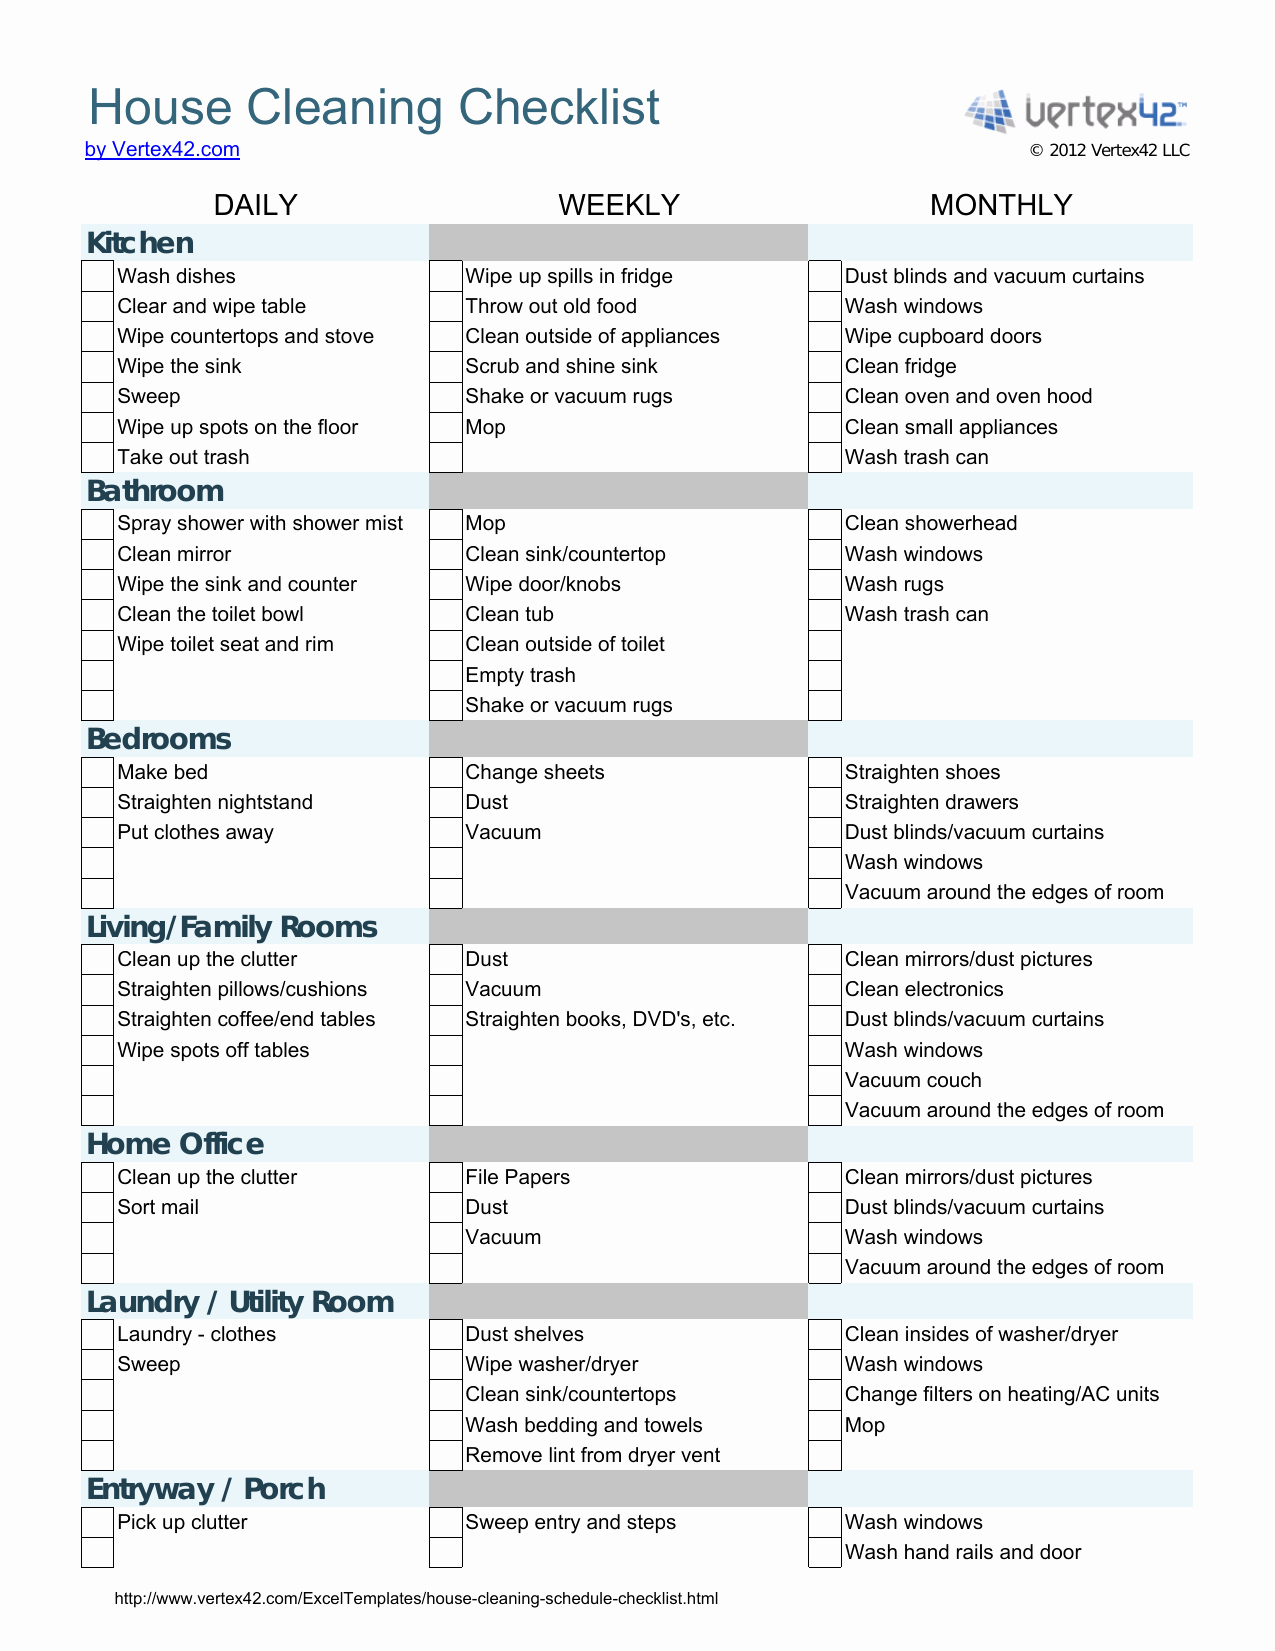 Cleaning Checklist Template Word Fresh Download House Cleaning Checklist Template Excel